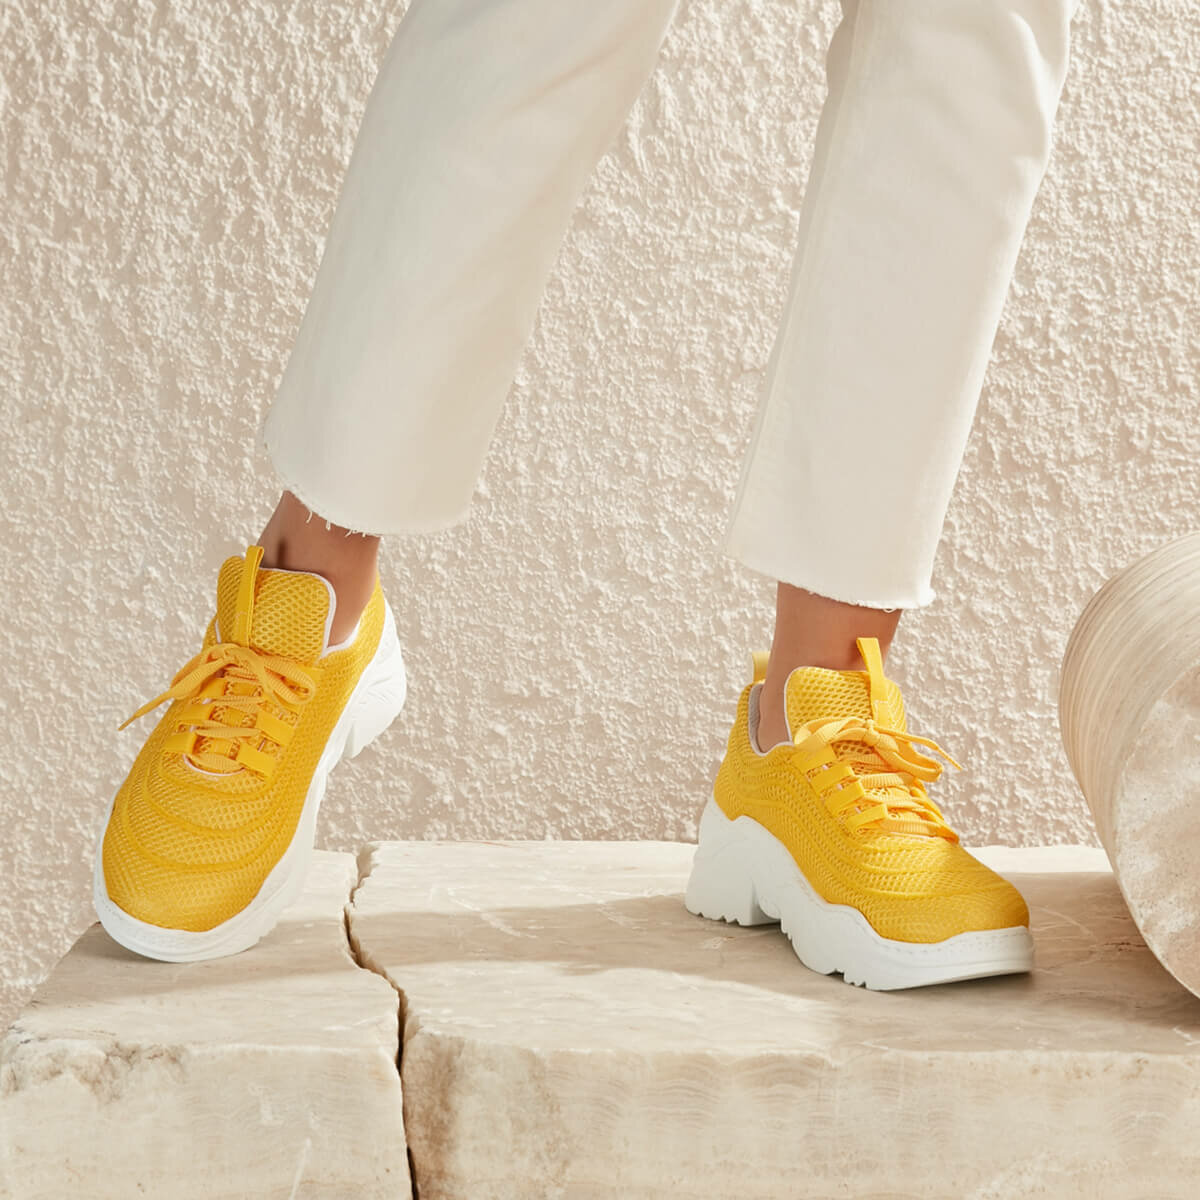 FLO POLLY51Z Yellow Women 'S Sneaker Shoes BUTIGO